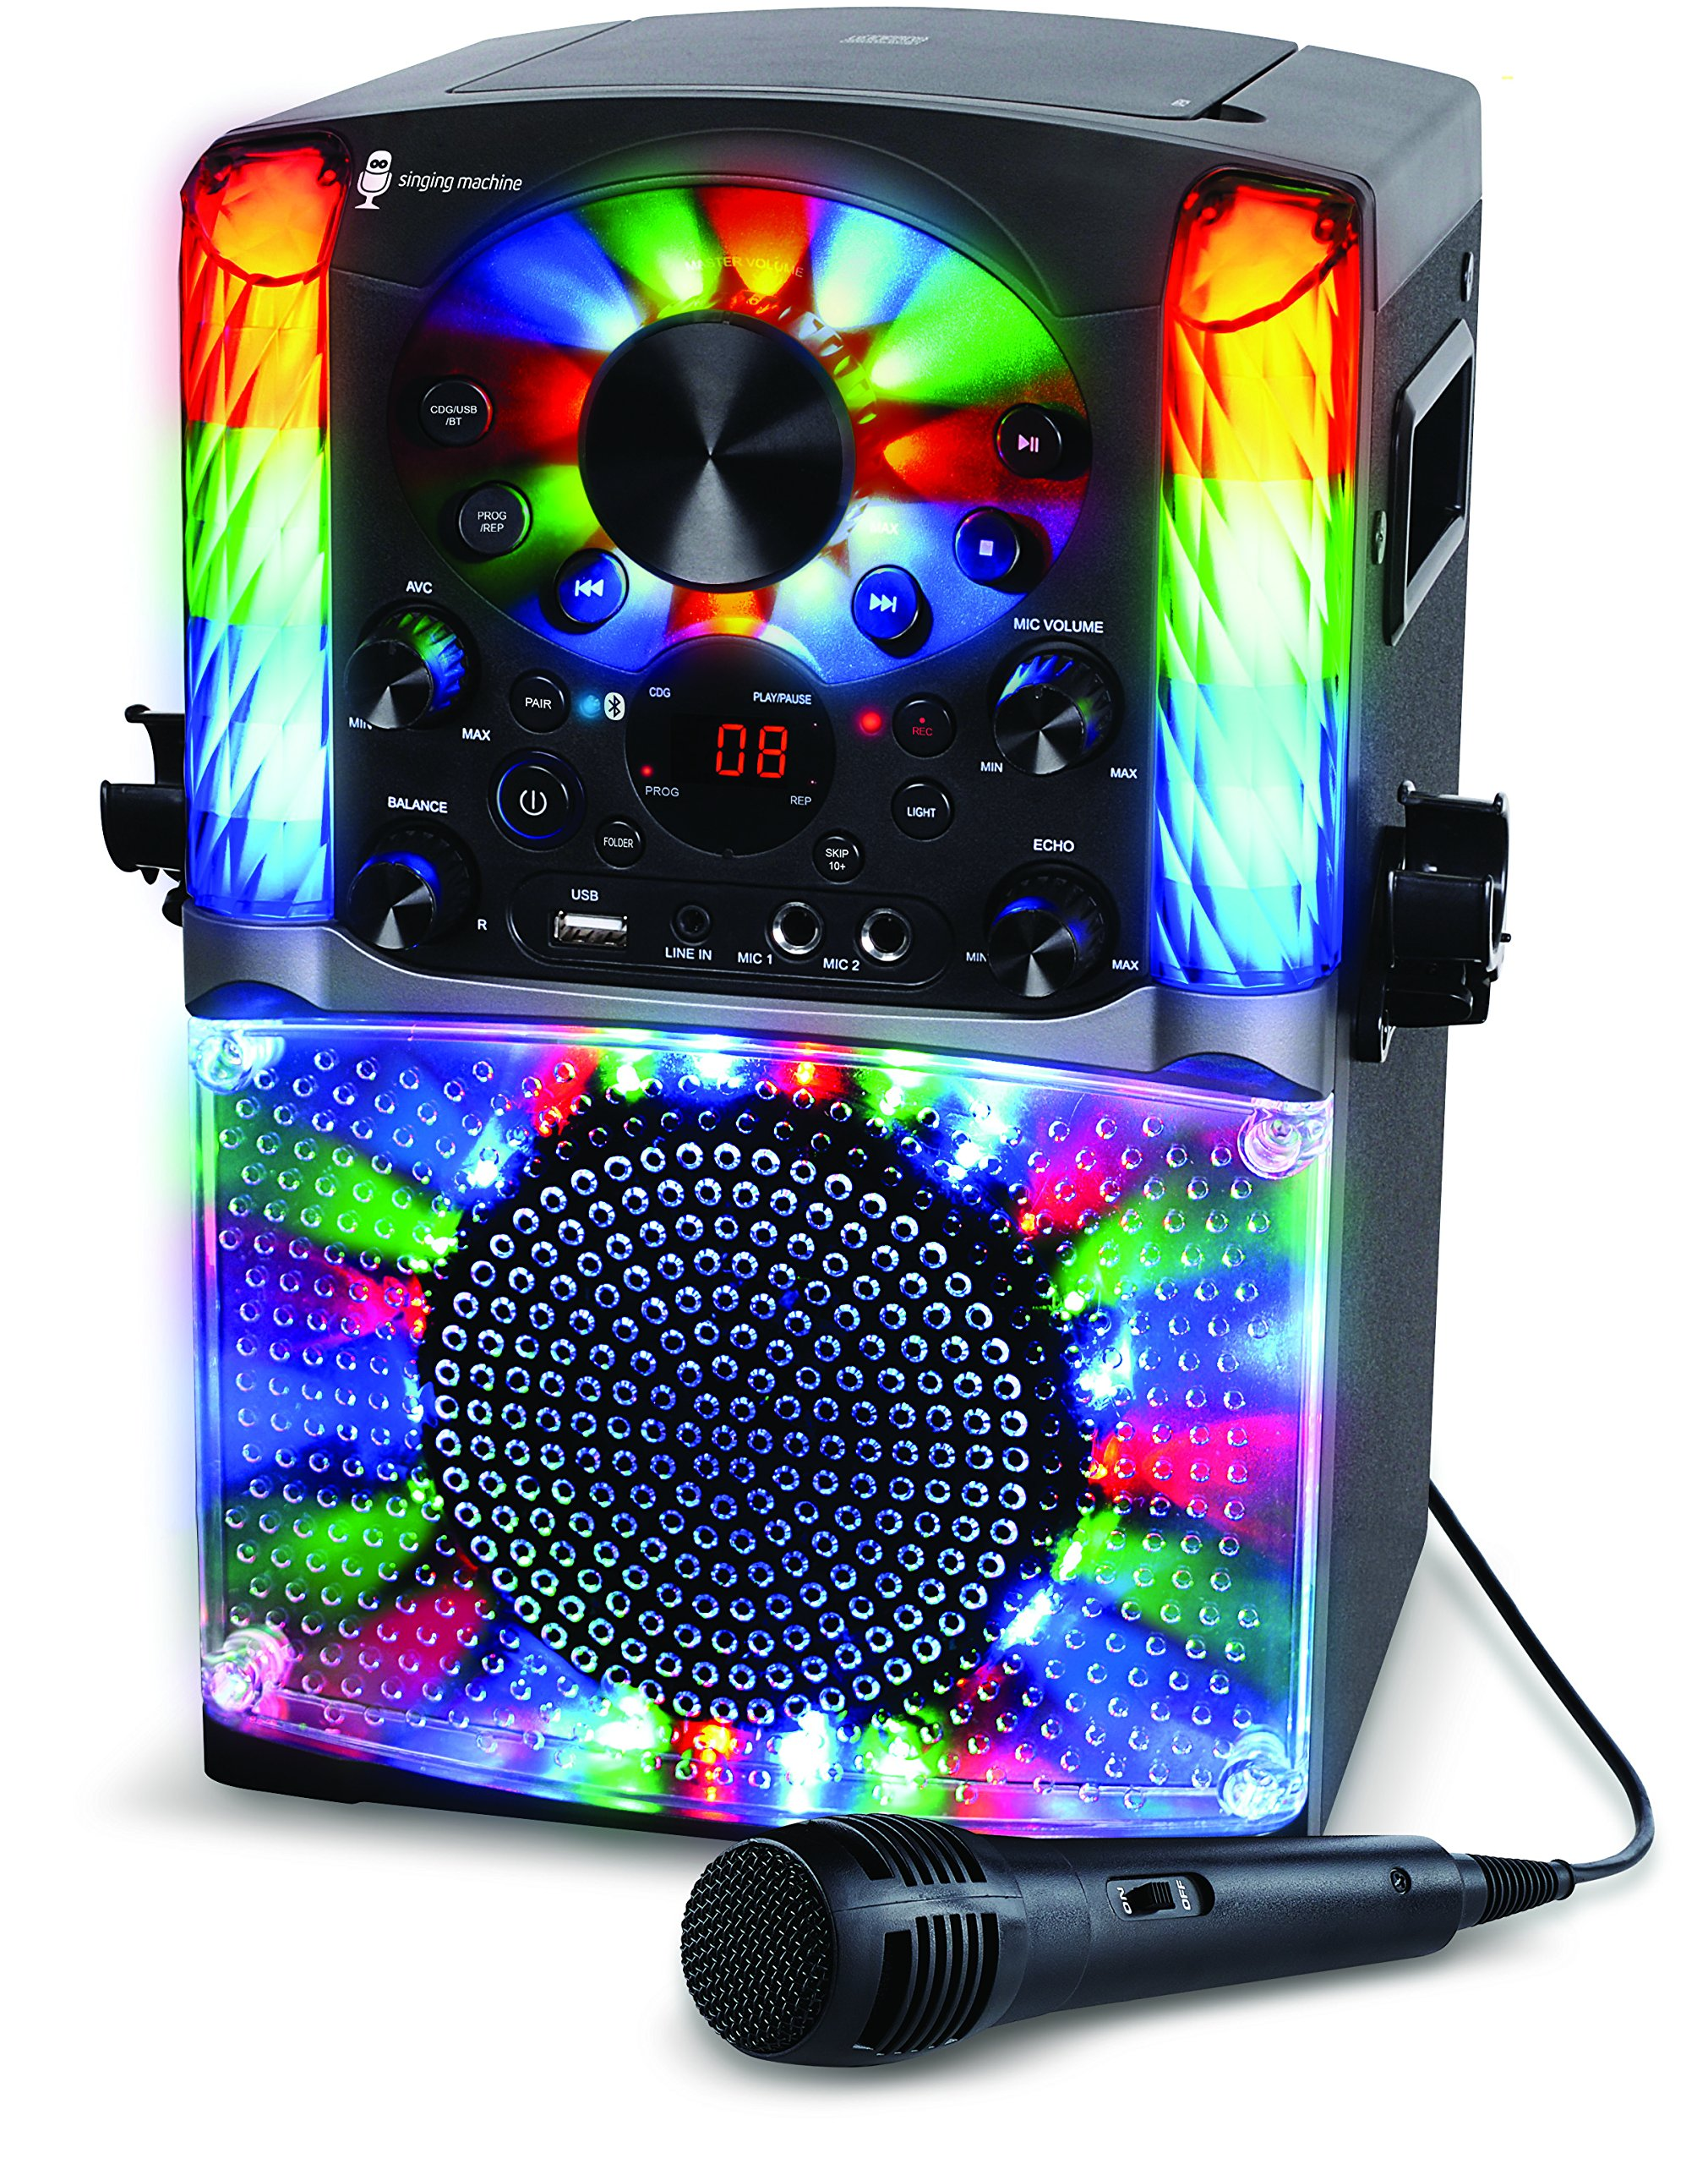 Singing Machine SML625BTBK Bluetooth CD+G Karaoke System Black by Singing Machine (Image #4)